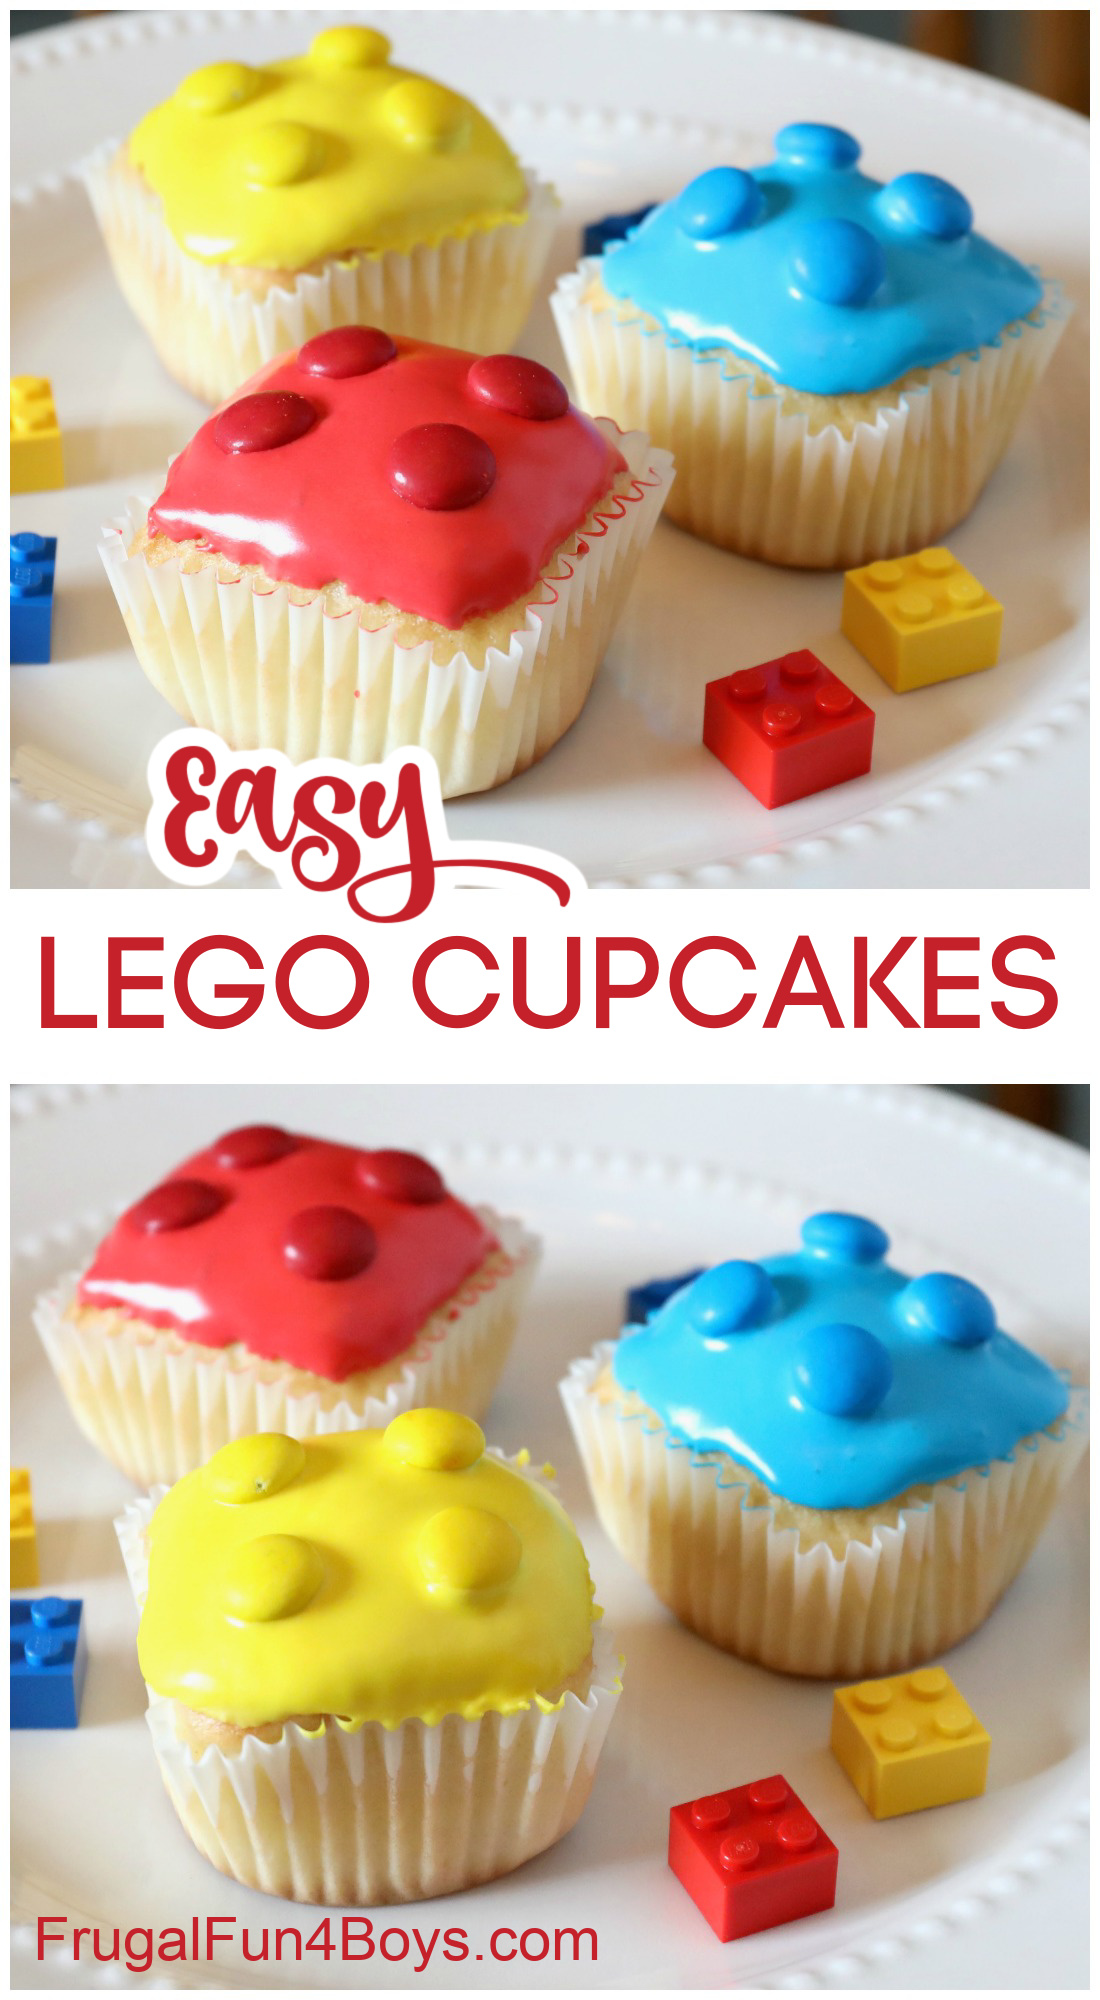 How to Make Easy LEGO Cupcakes